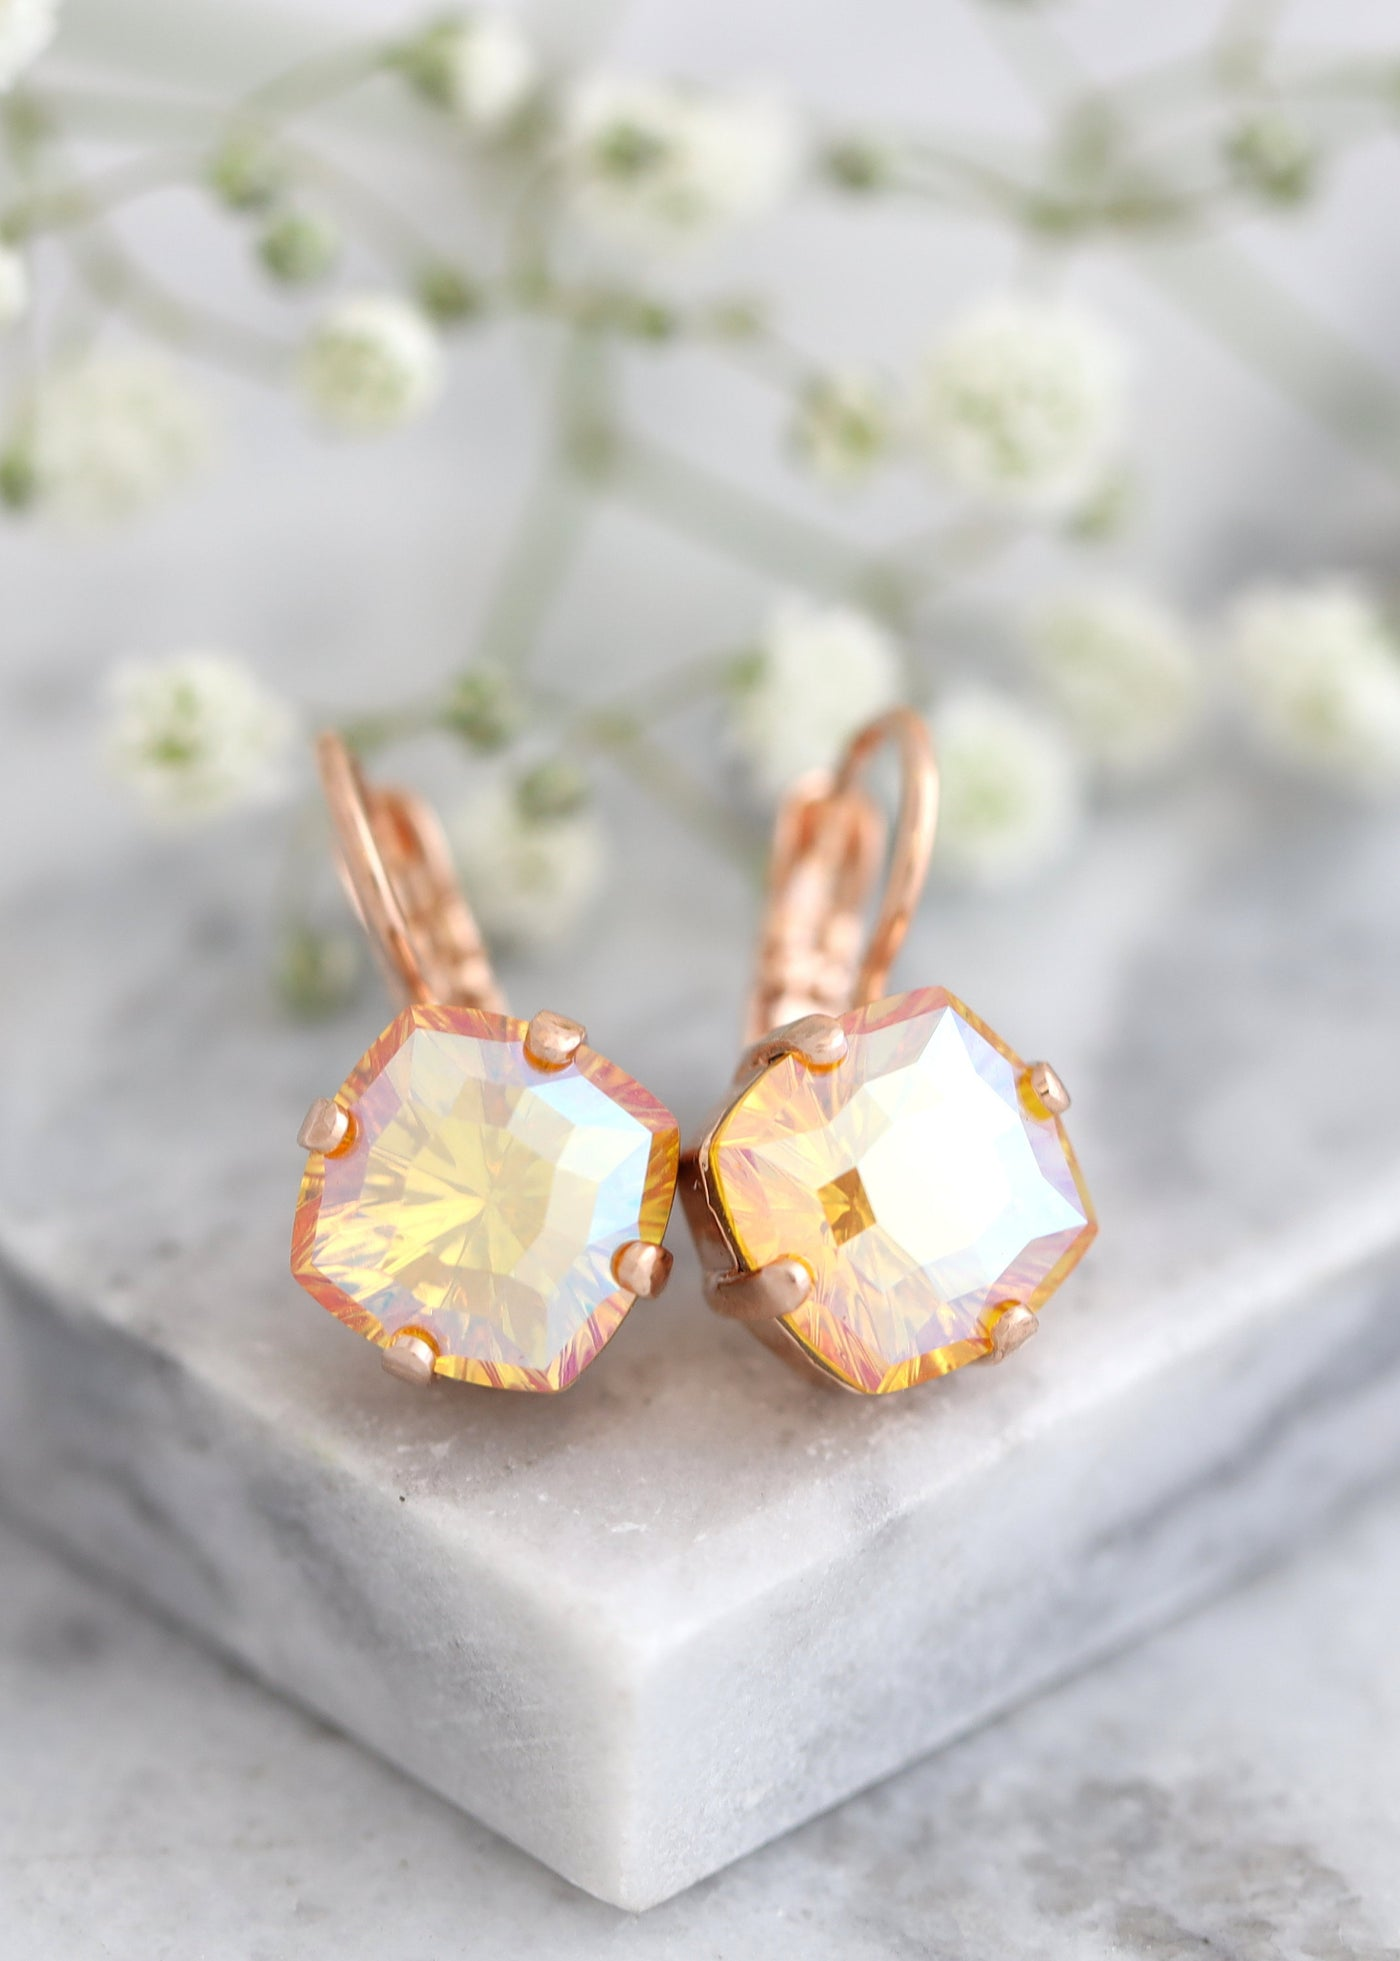 Peach Gold Earrings, Orange Drop Crystal Earrings, Bridal Orange Crystal Drop Earrings, Orange Gold Crystal Earrings, Bridesmaids Earrings